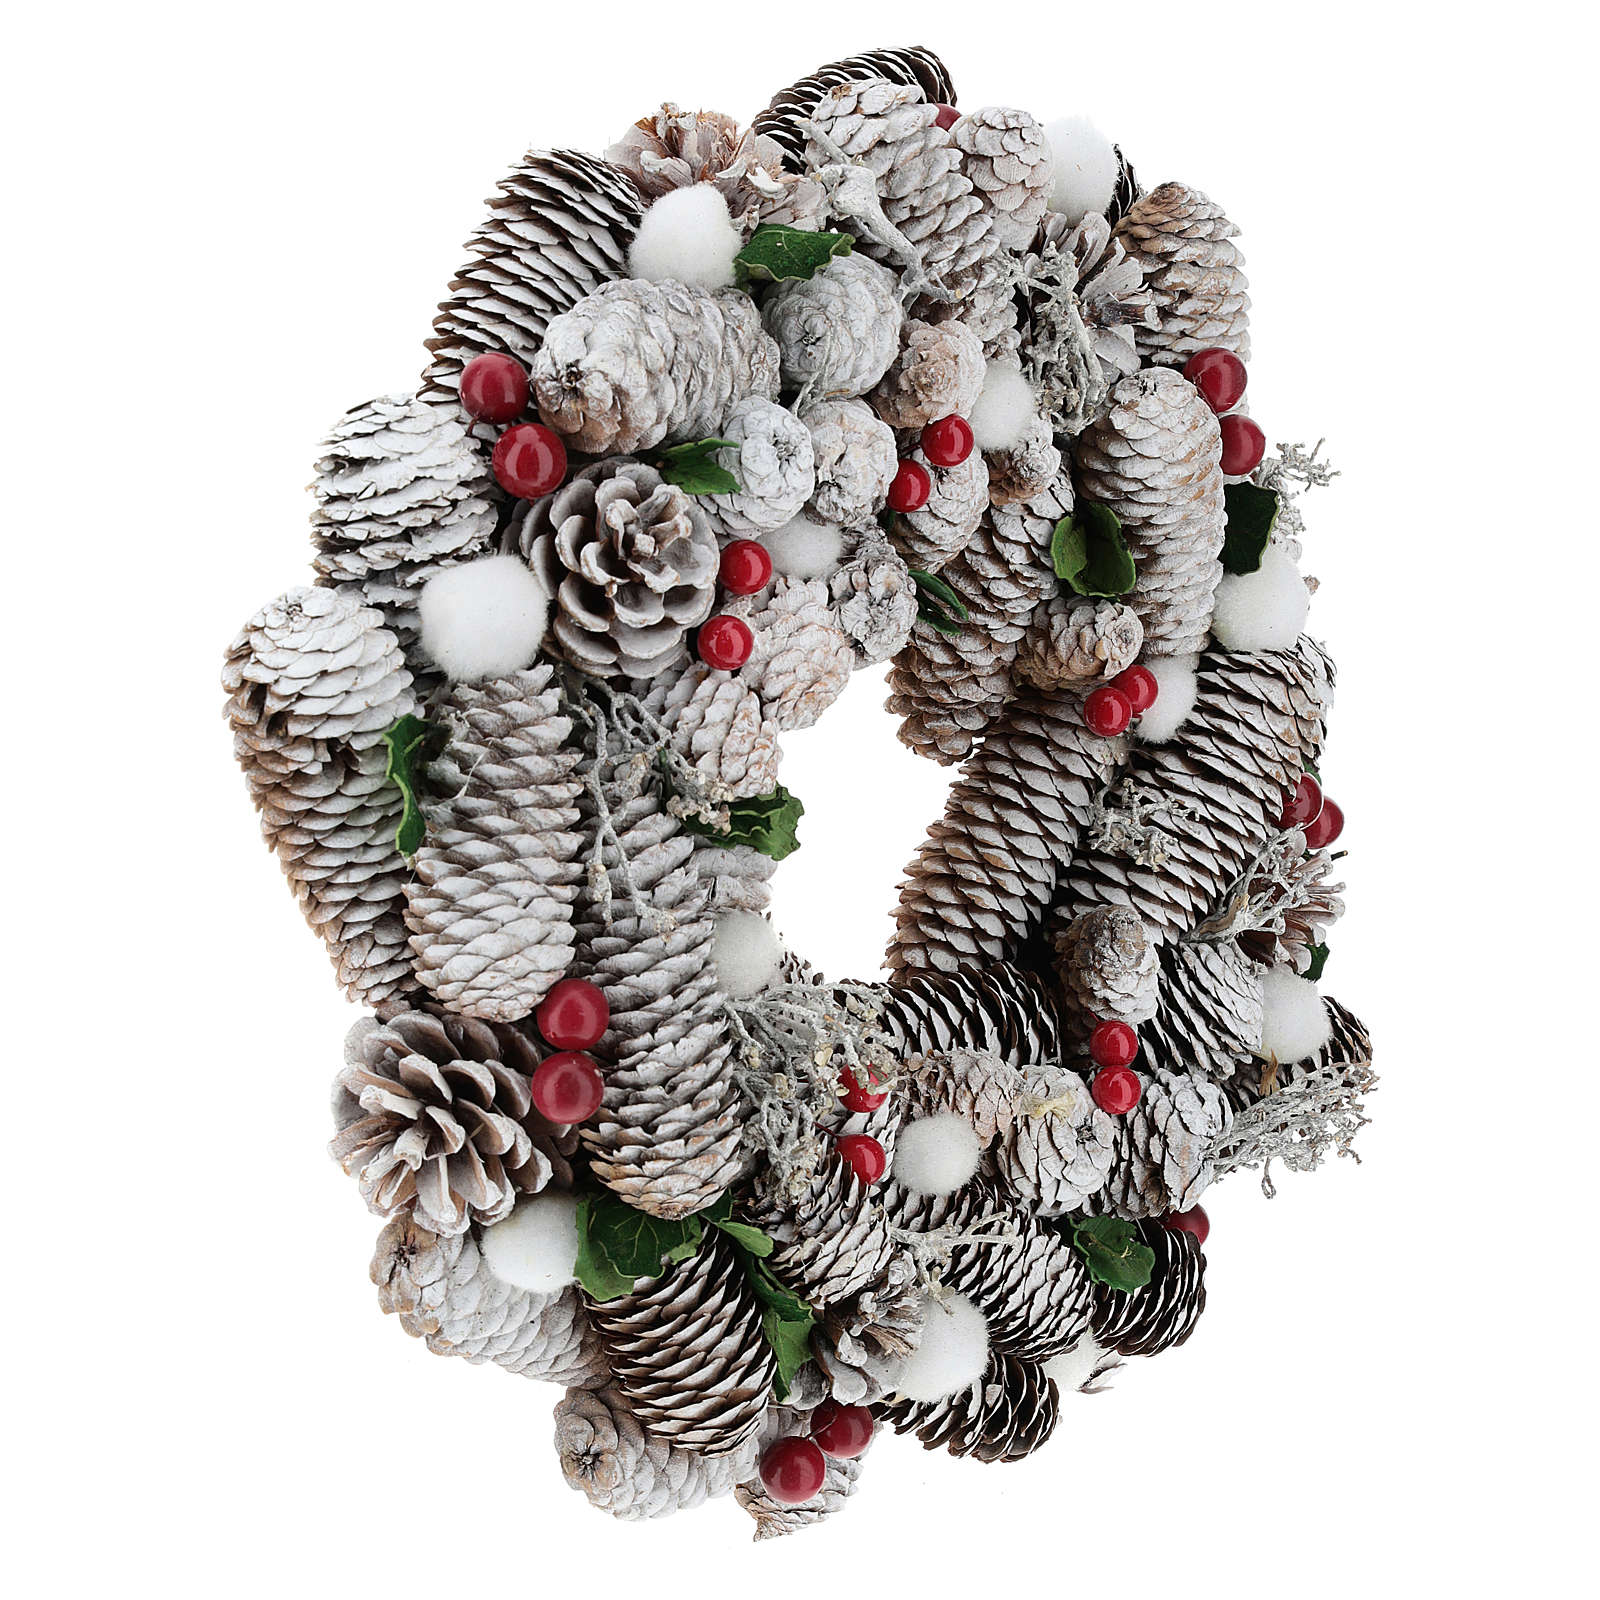 White Christmas wreath with pine cones and holly diam. 33 cm 3